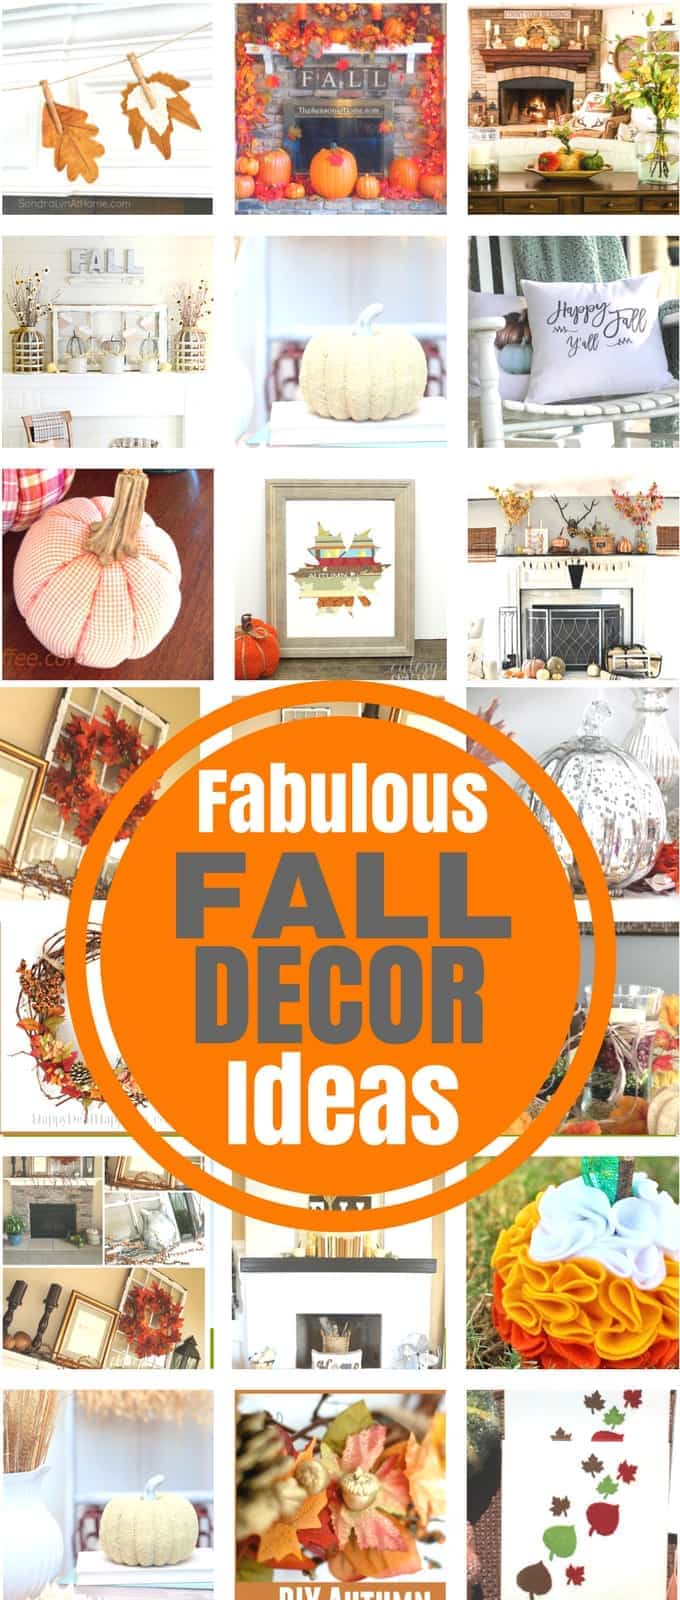 Easy Fall Decorating ideas for your home, mantle and more ideas for Fall Porch decor too! We have Inexpensive Fall Decor ideas that will work for any budget as well as some really crafty home made fall decor ideas too!